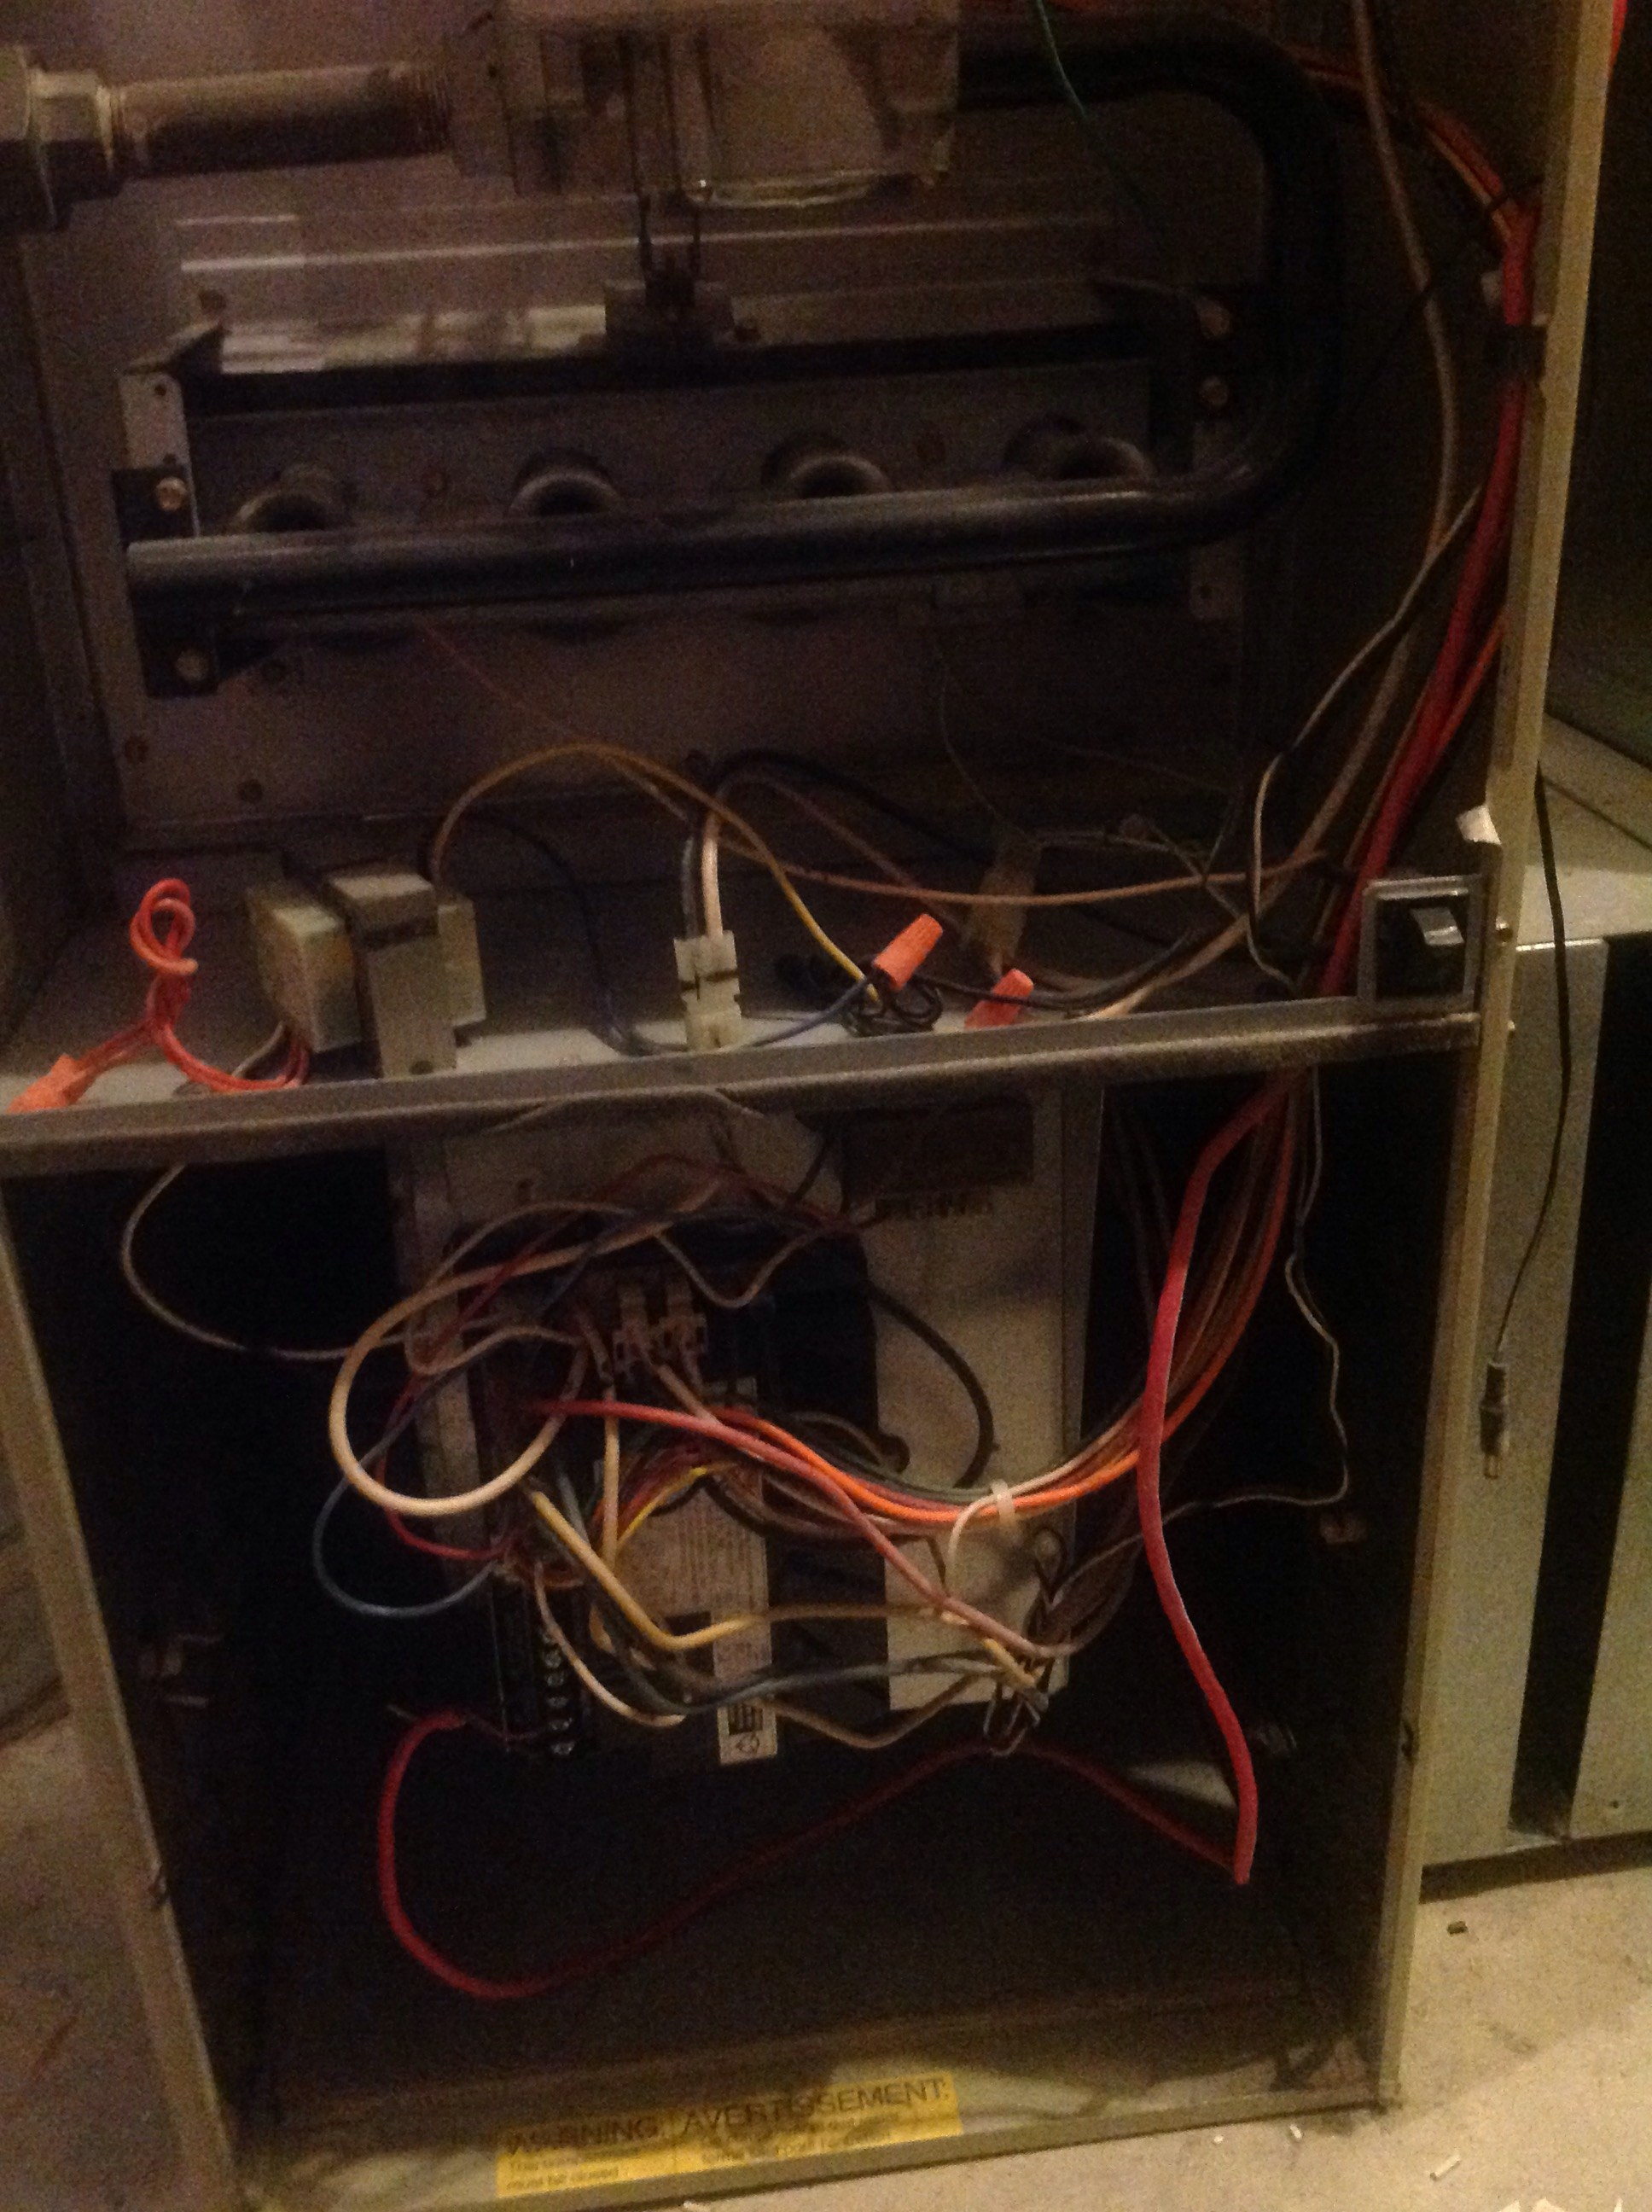 furnace blower humming when off garage heater wiring diagram how to inspect hvac systems course page 562 internachi